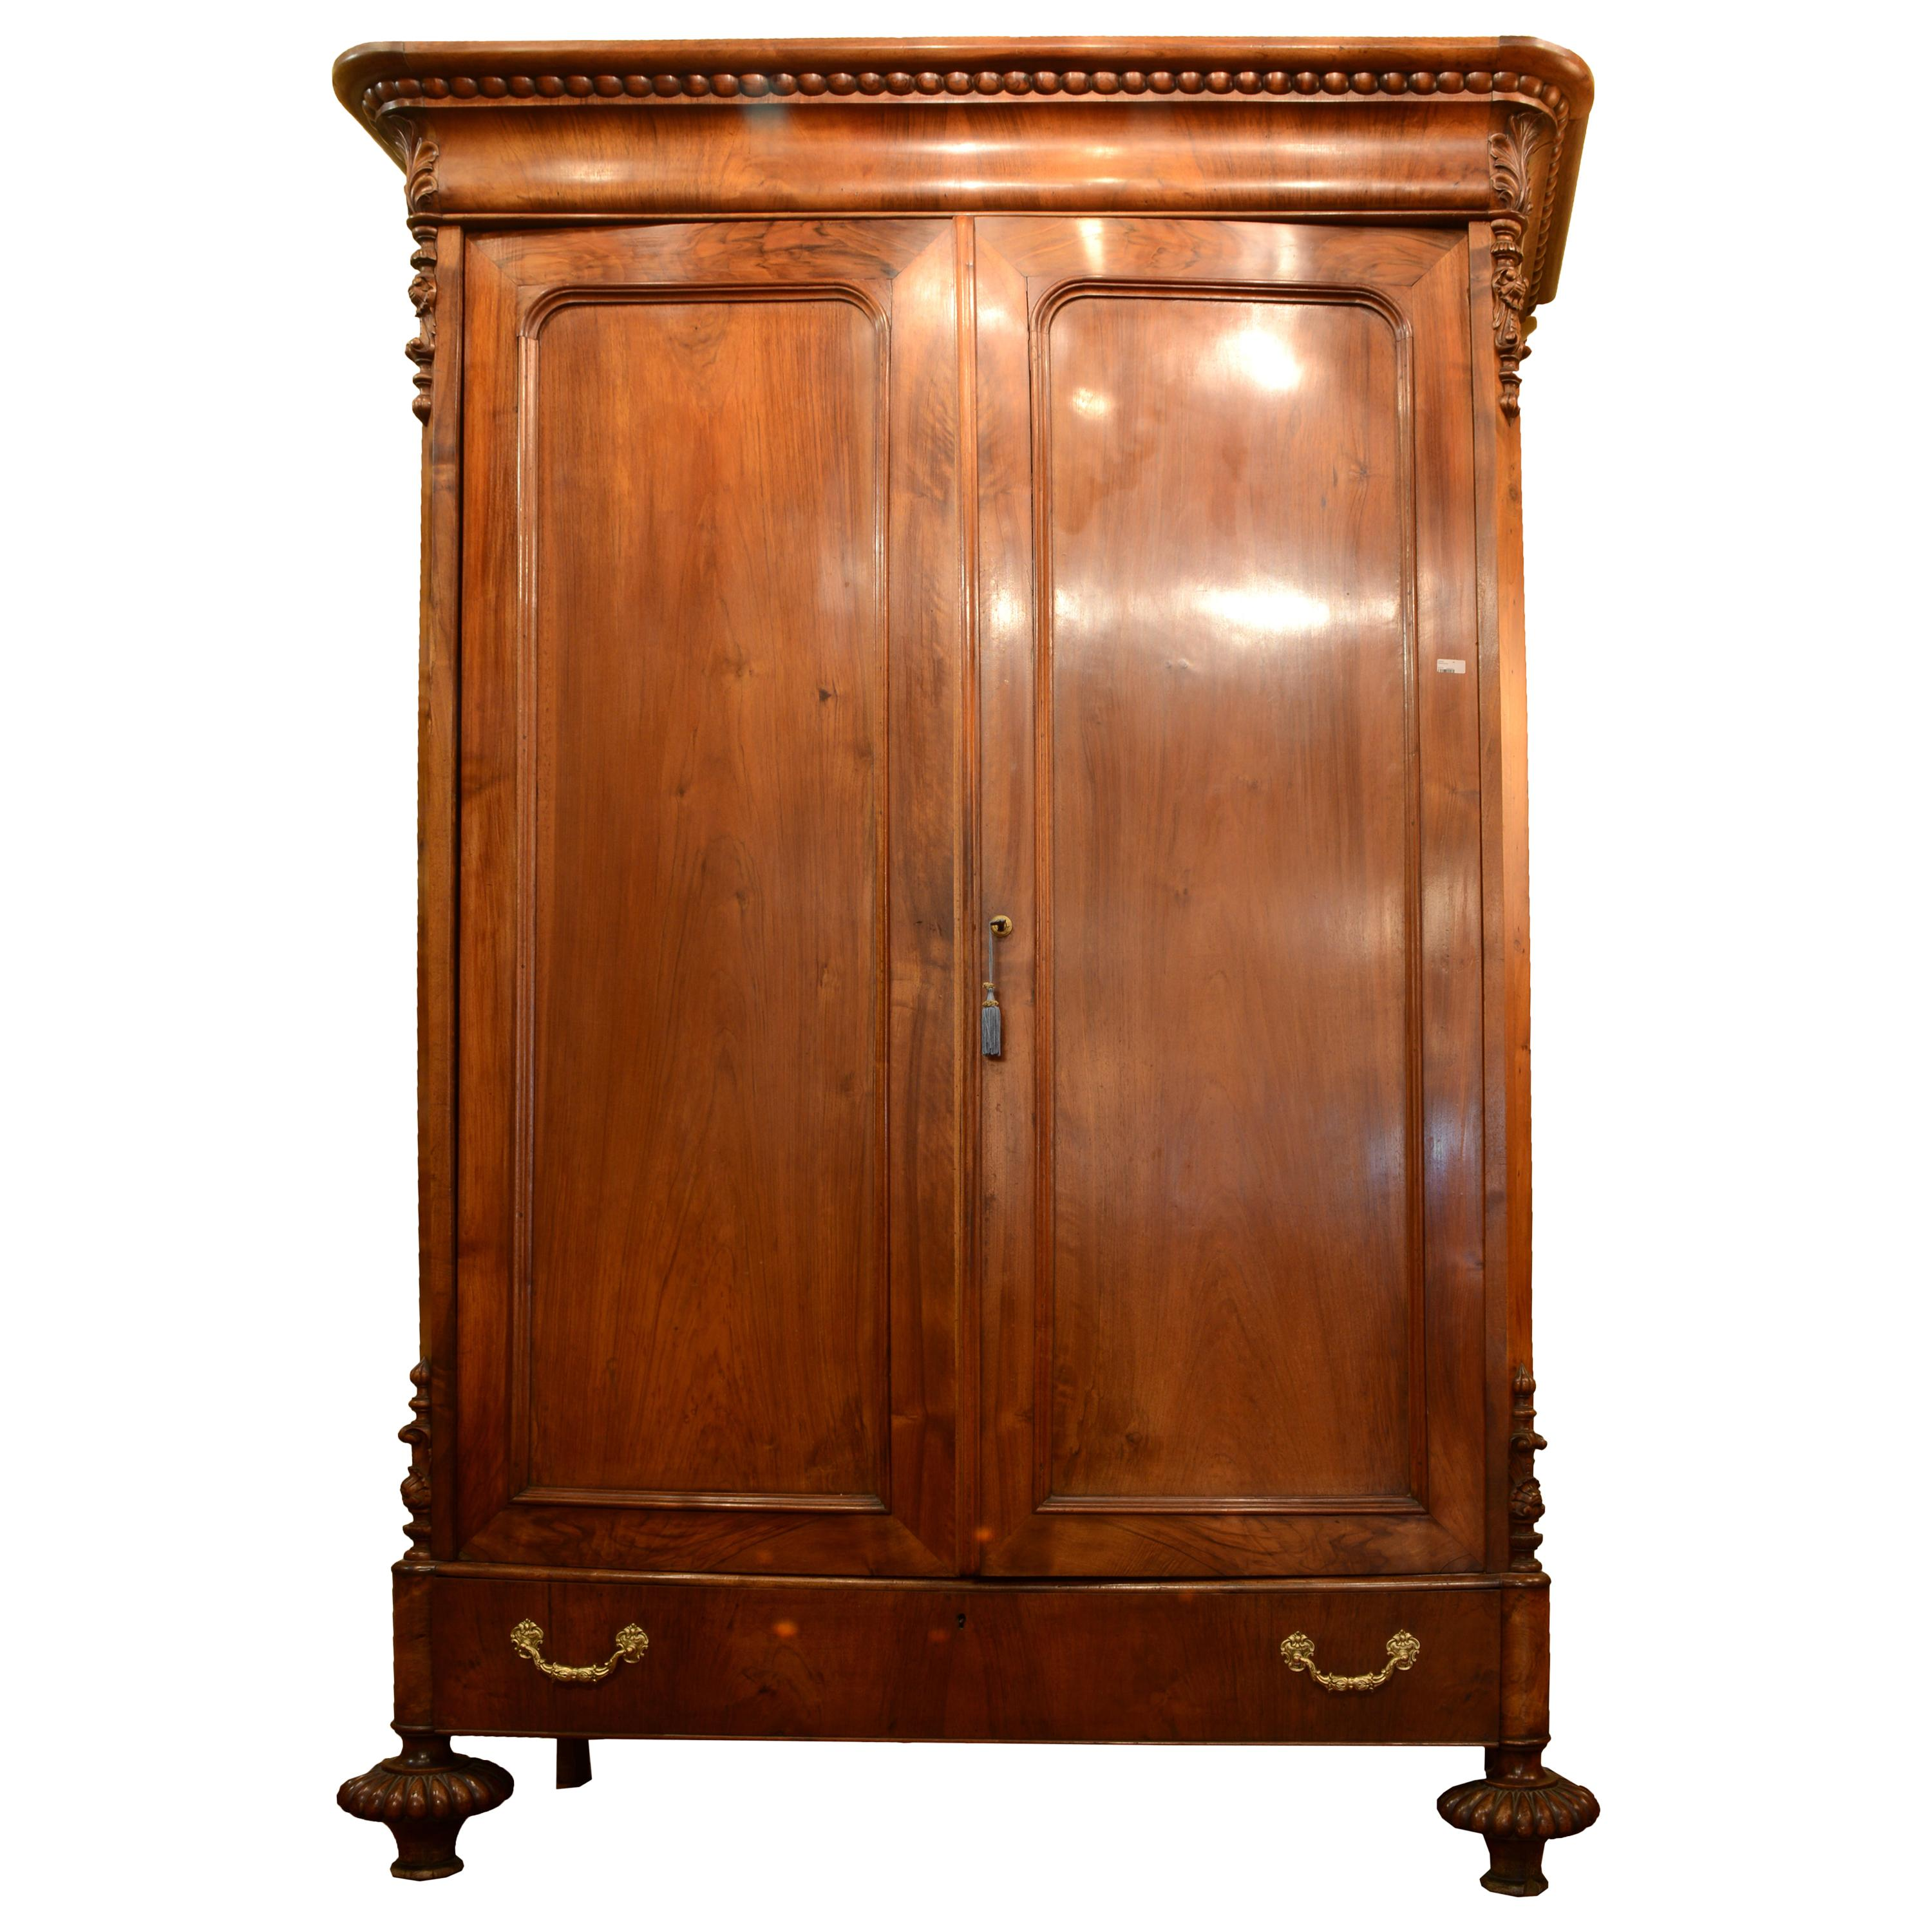 Wardrobe Furniture Antique And Vintage Wardrobes And Armoires 1 701 For Sale At 1stdibs